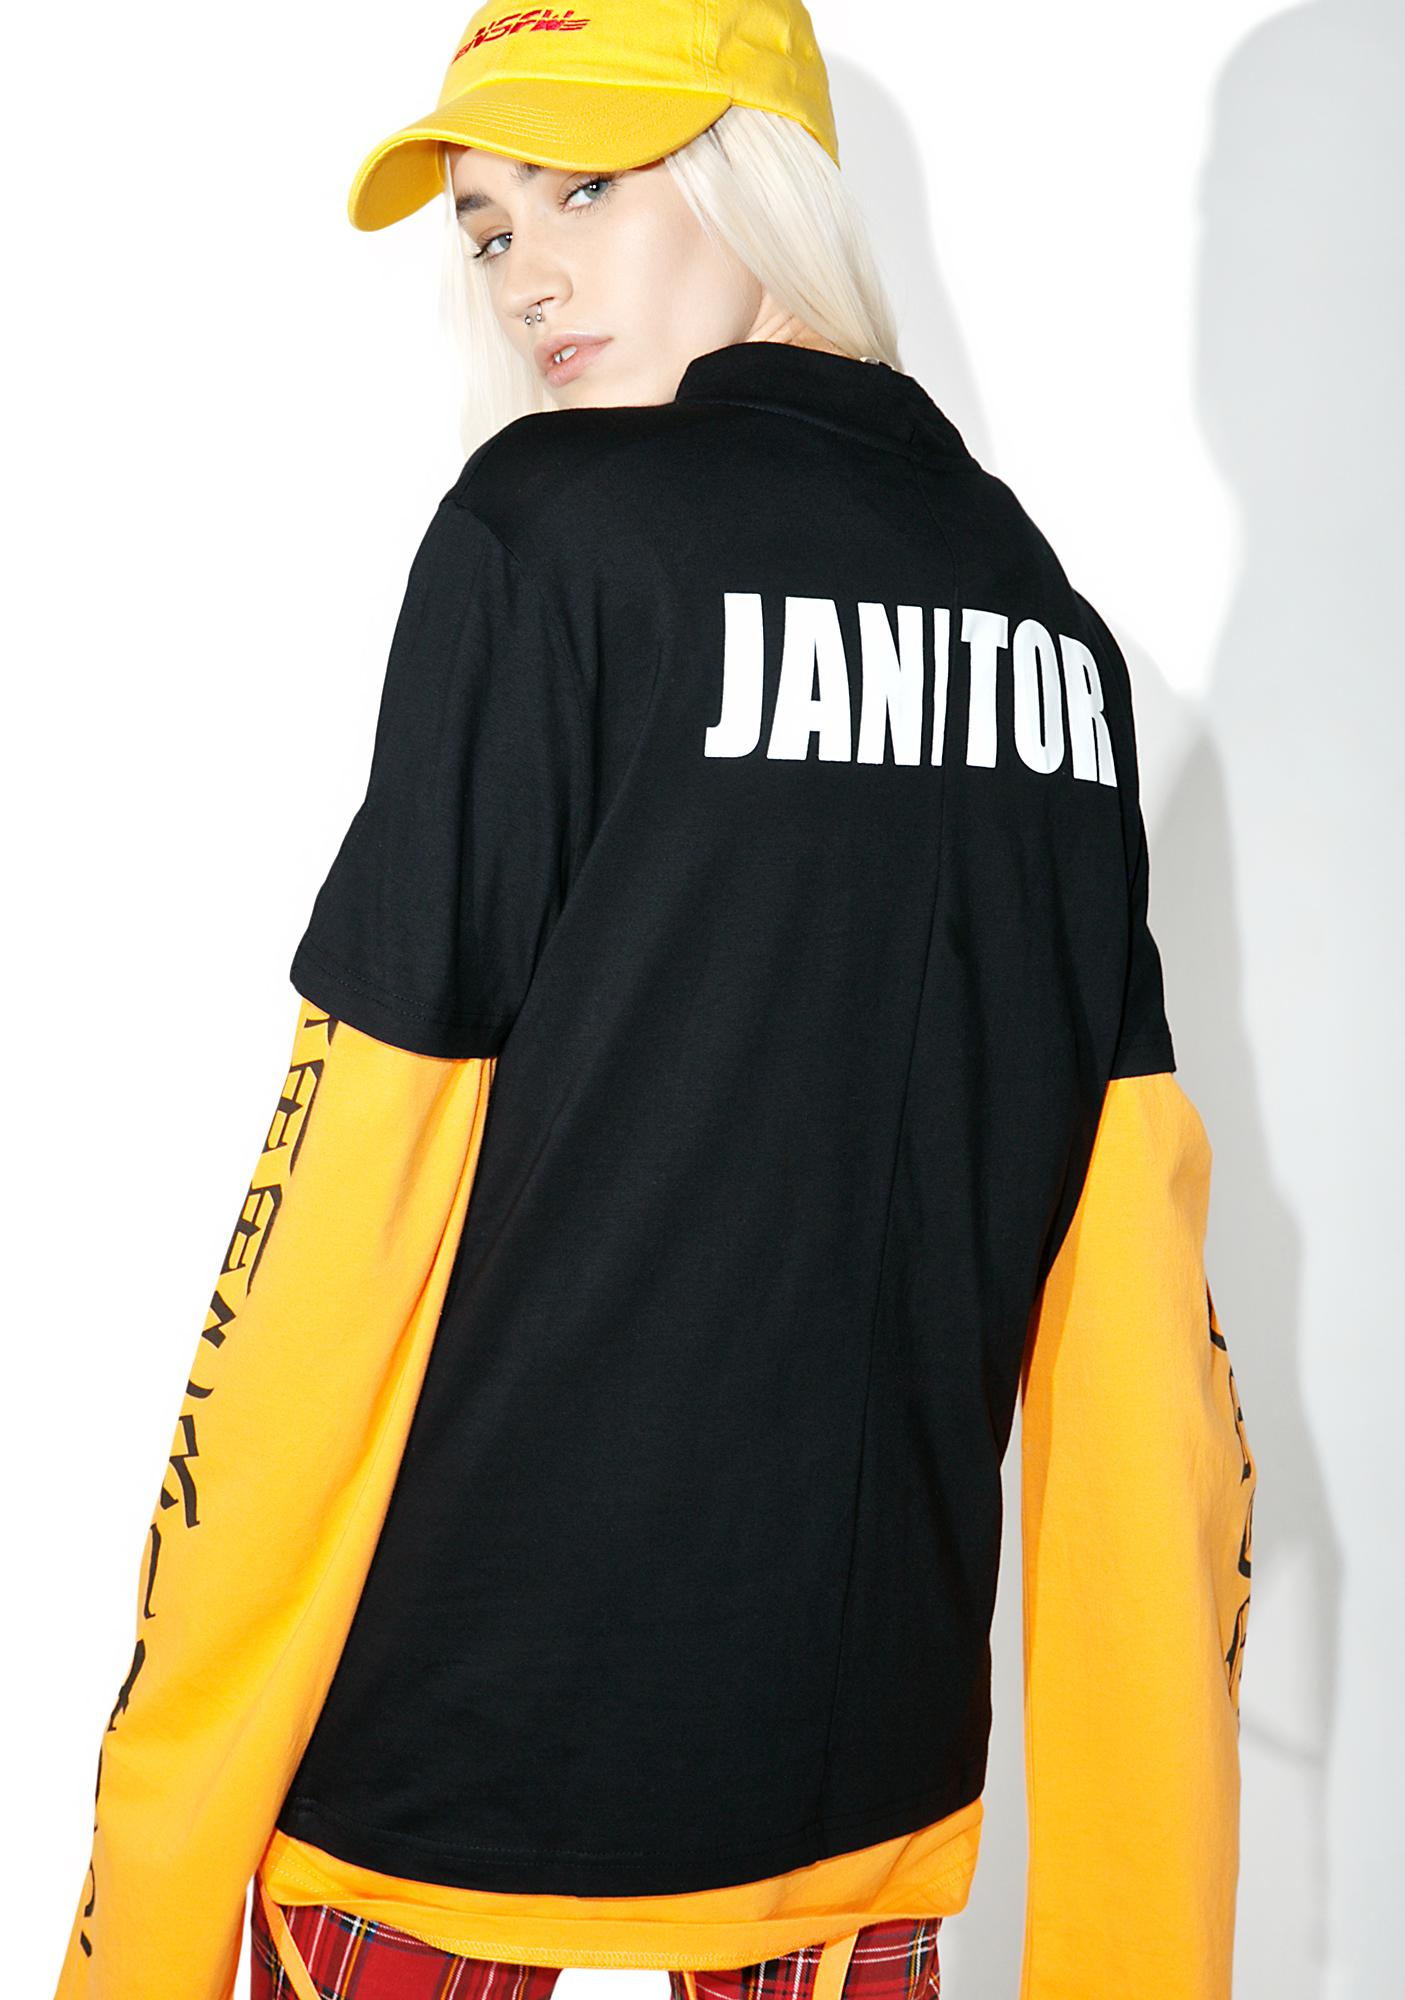 Vetememes Deconstructed Janitor Tee